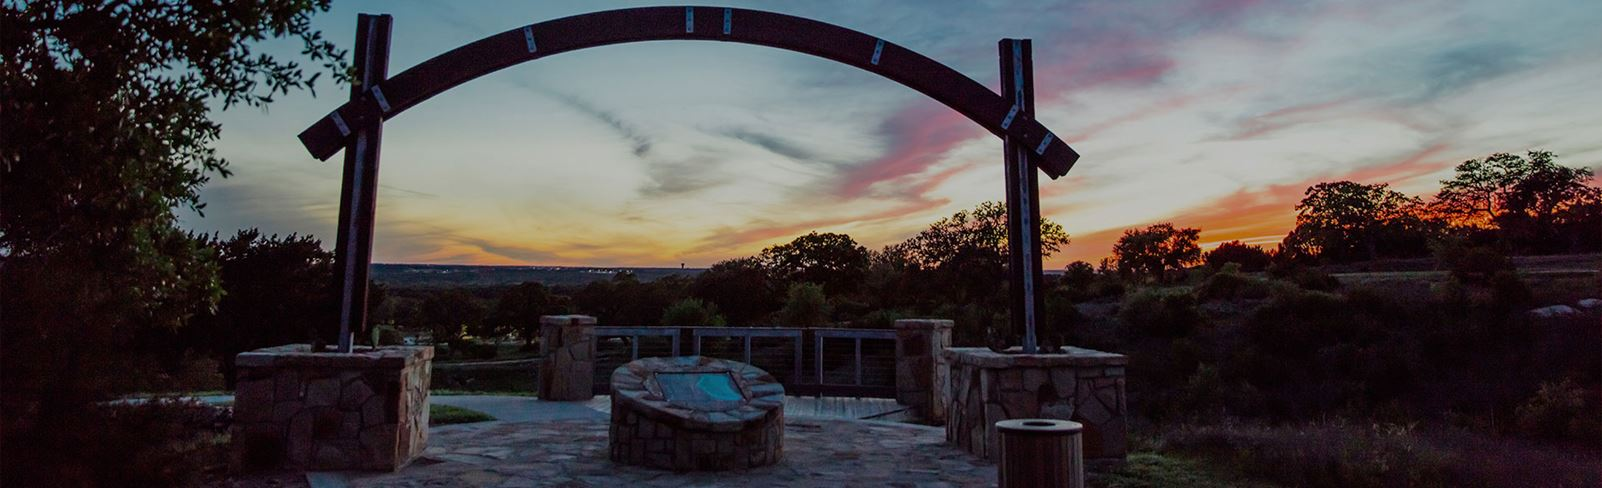 Rancho Sienna Park trailhead at sunset